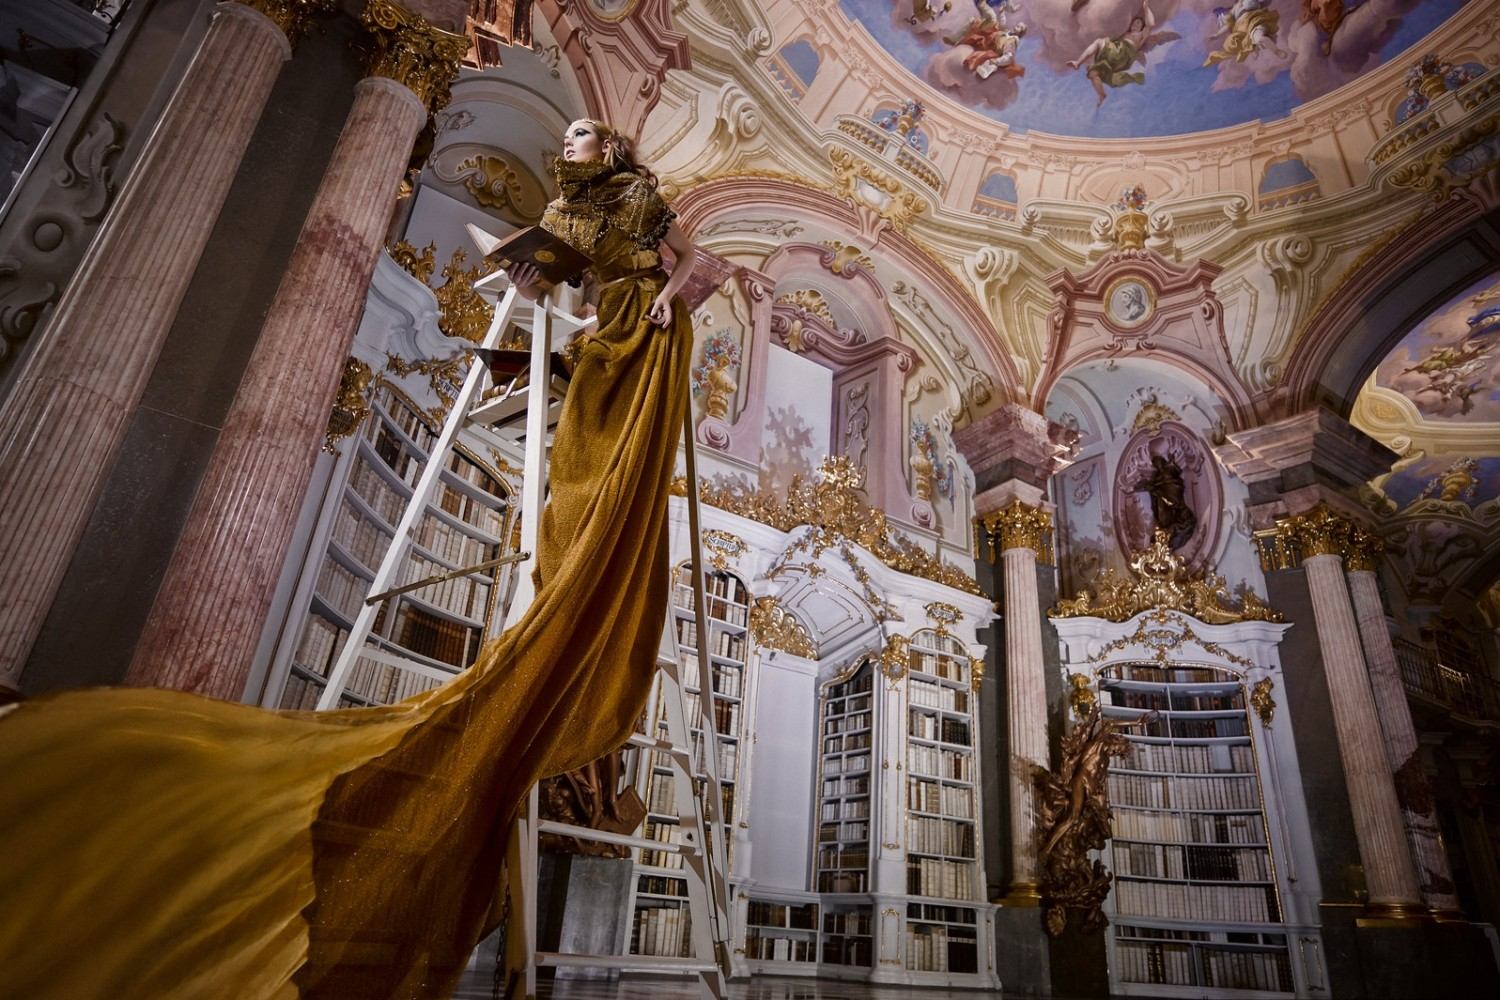 Dream Come True: A Fairytale Photo Shoot in the Oldest Monastic Library on Earth